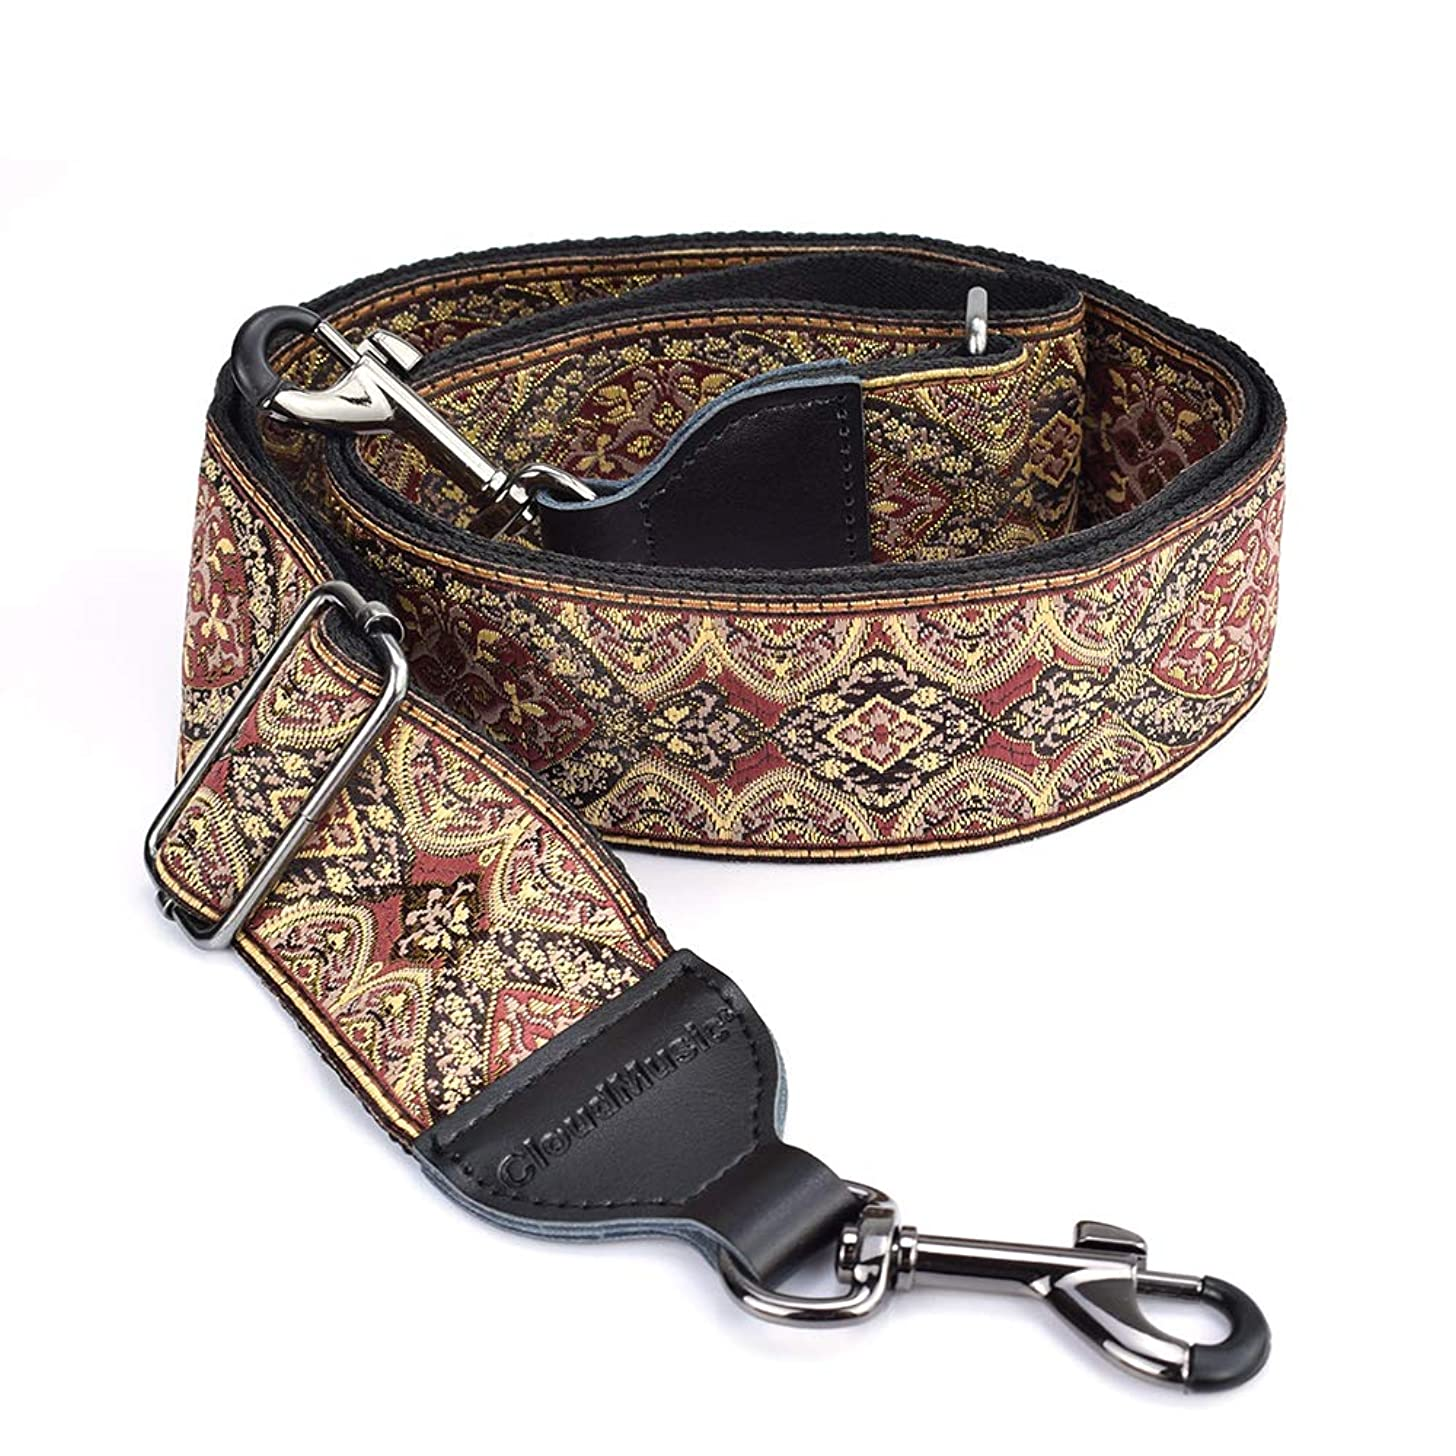 CLOUDMUSIC Banjo Strap Guitar Strap For Handbag Purse Jacquard Woven With Leather Ends And Metal Clips(Vintage Brown)